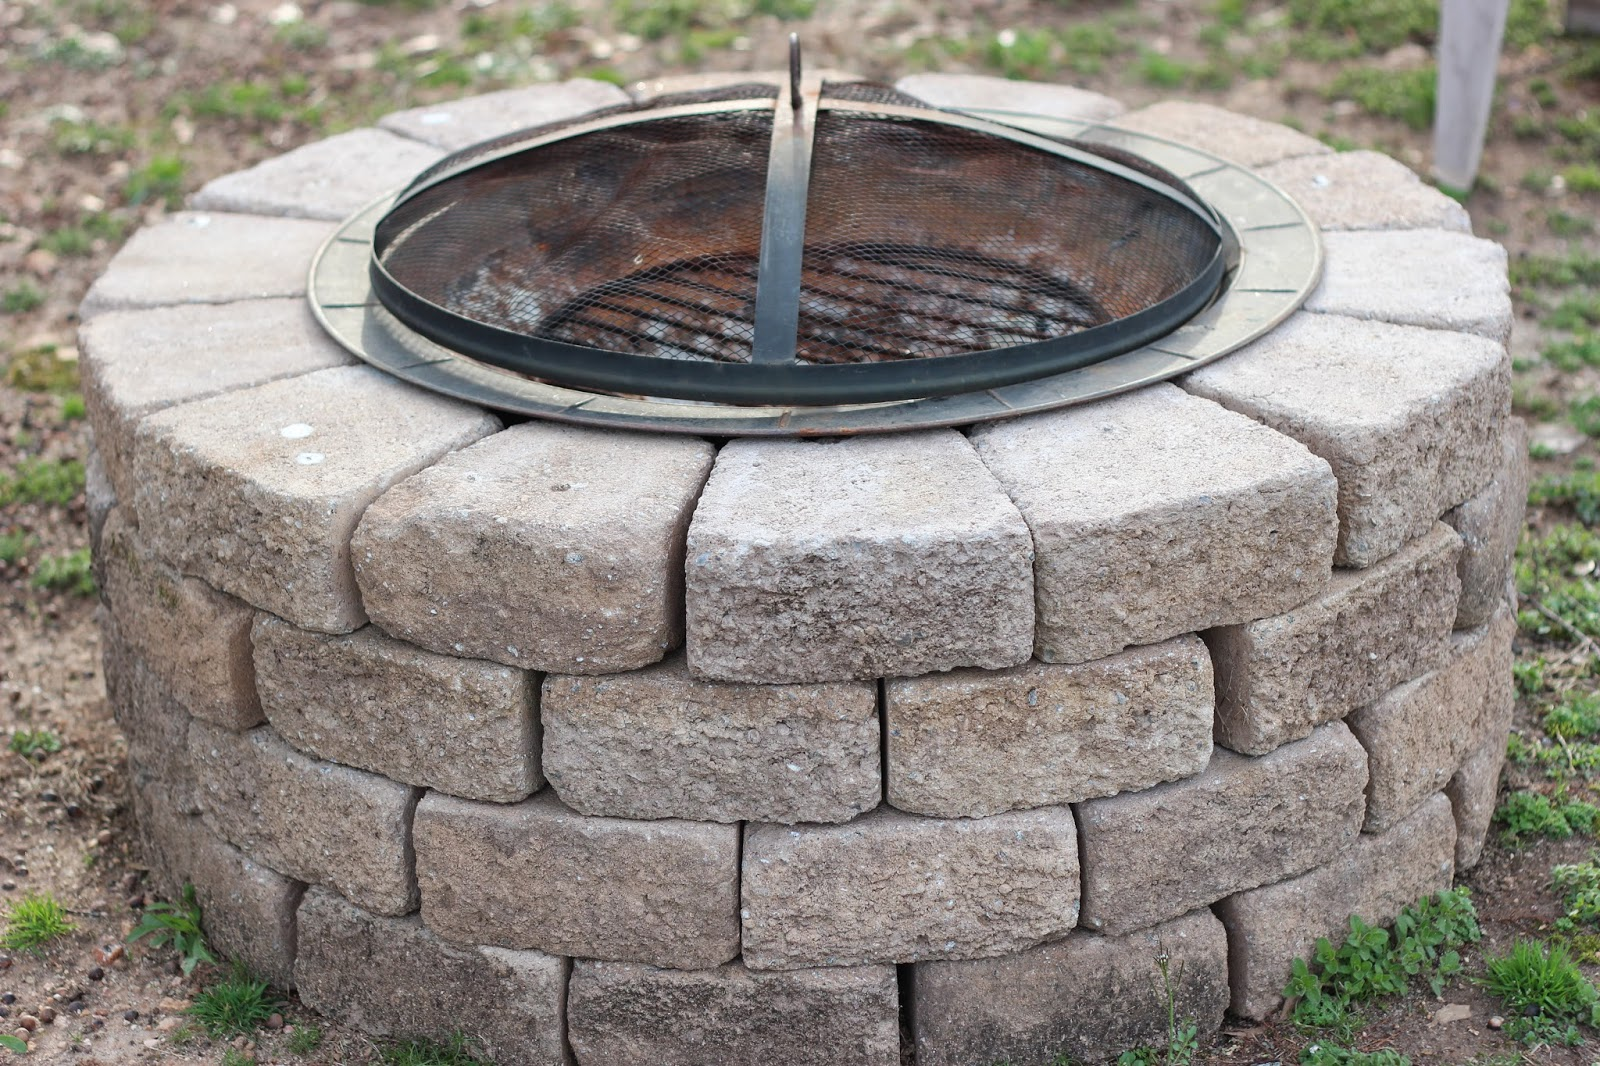 Grits & Giggles: Stone Fire Pit